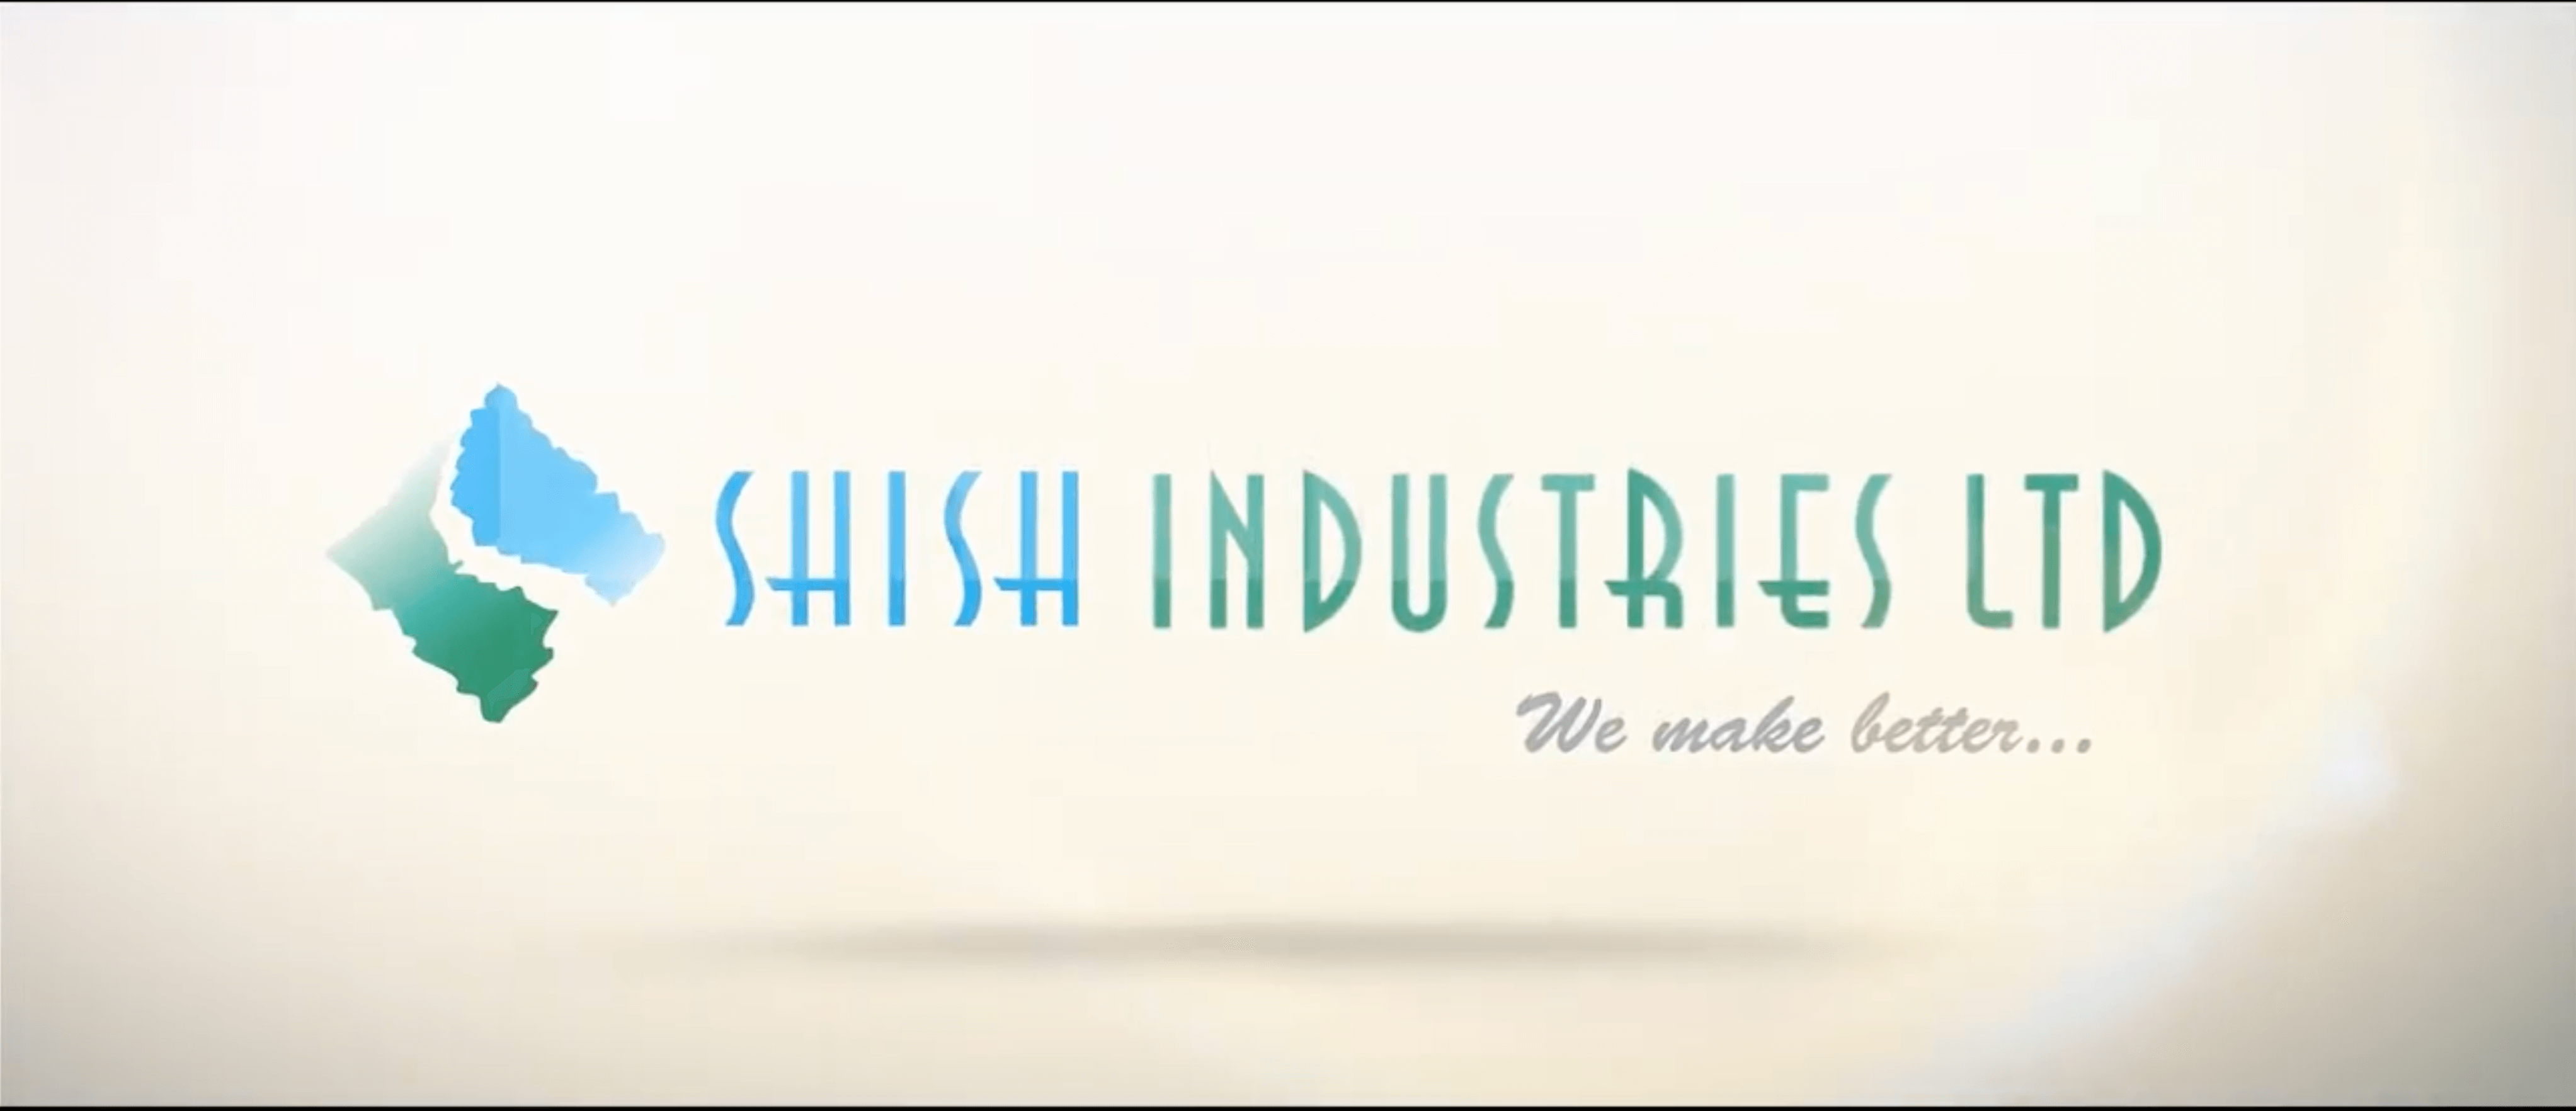 Shsih Industries banner